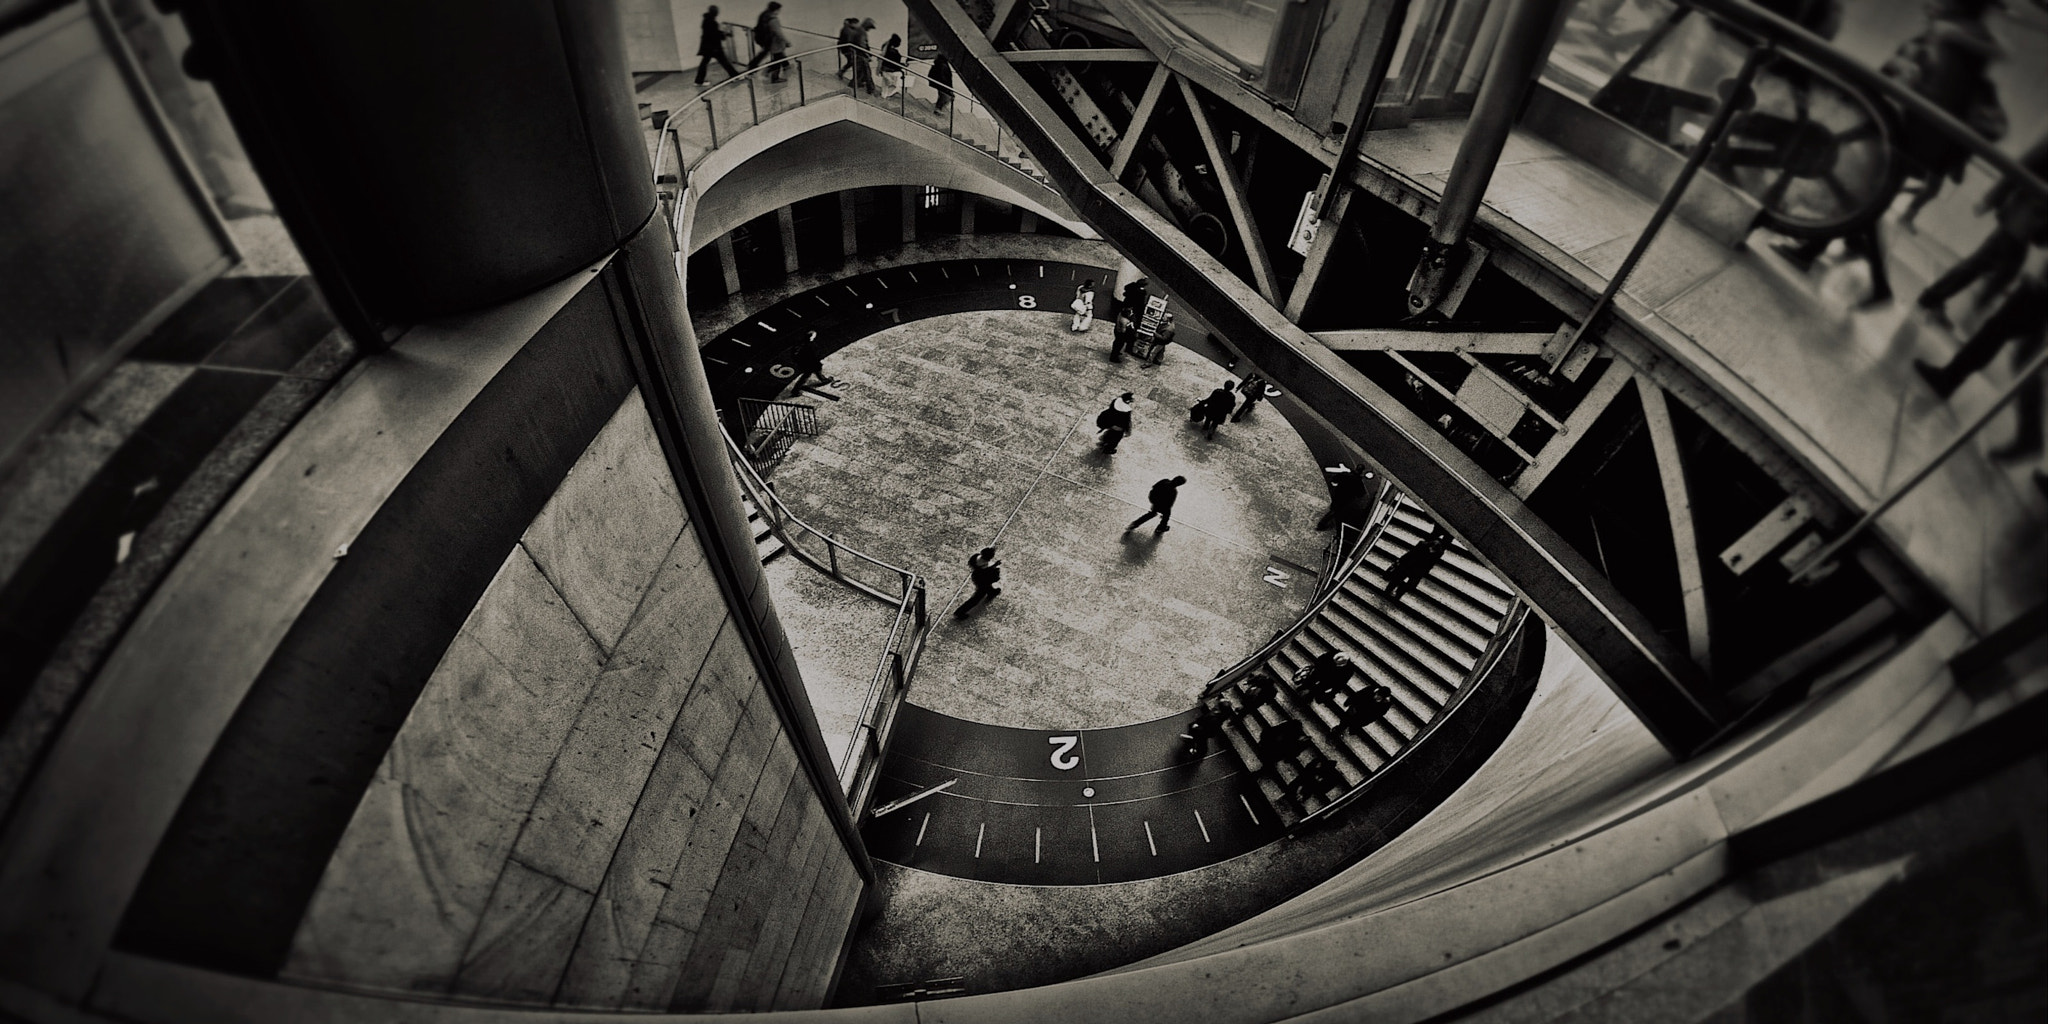 Photograph StaiR WaR by Francois Dourlen on 500px